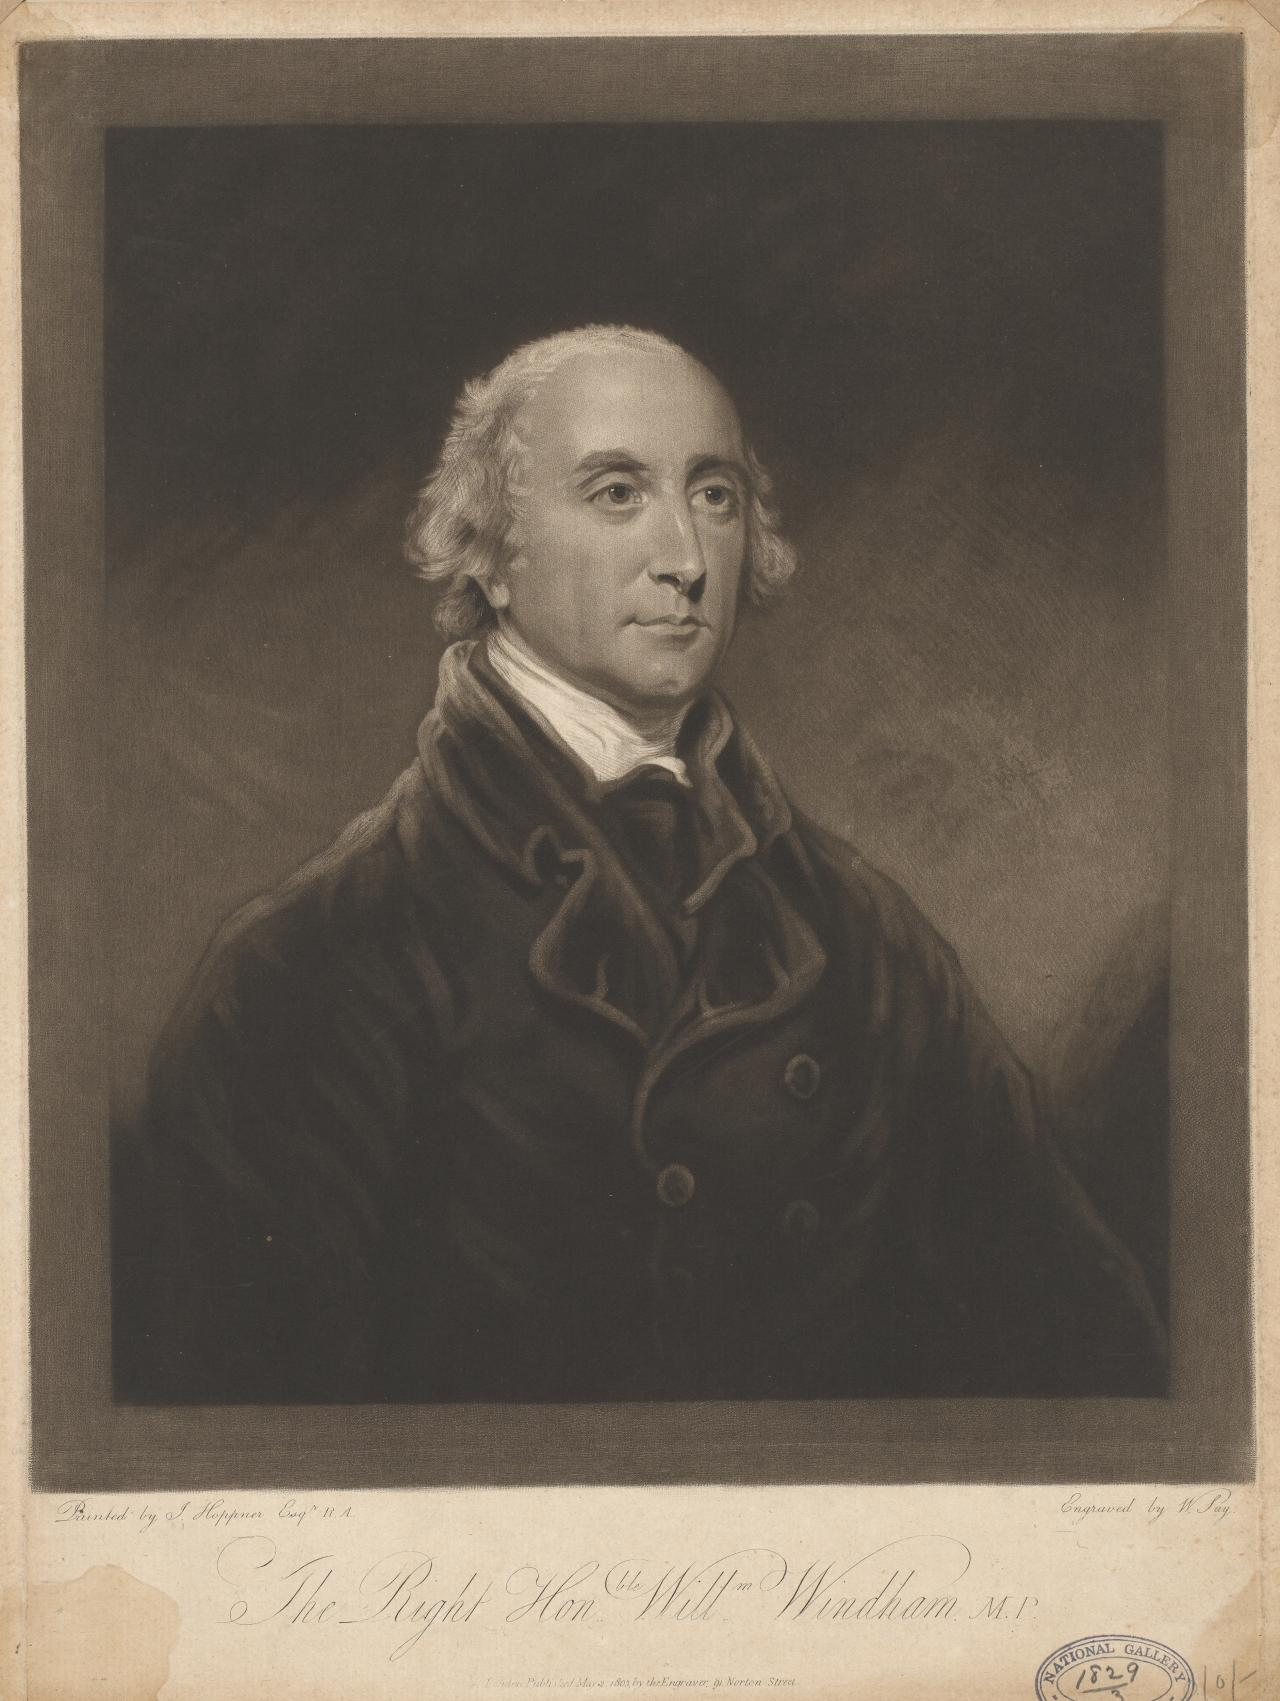 The Rt Hon William Windham